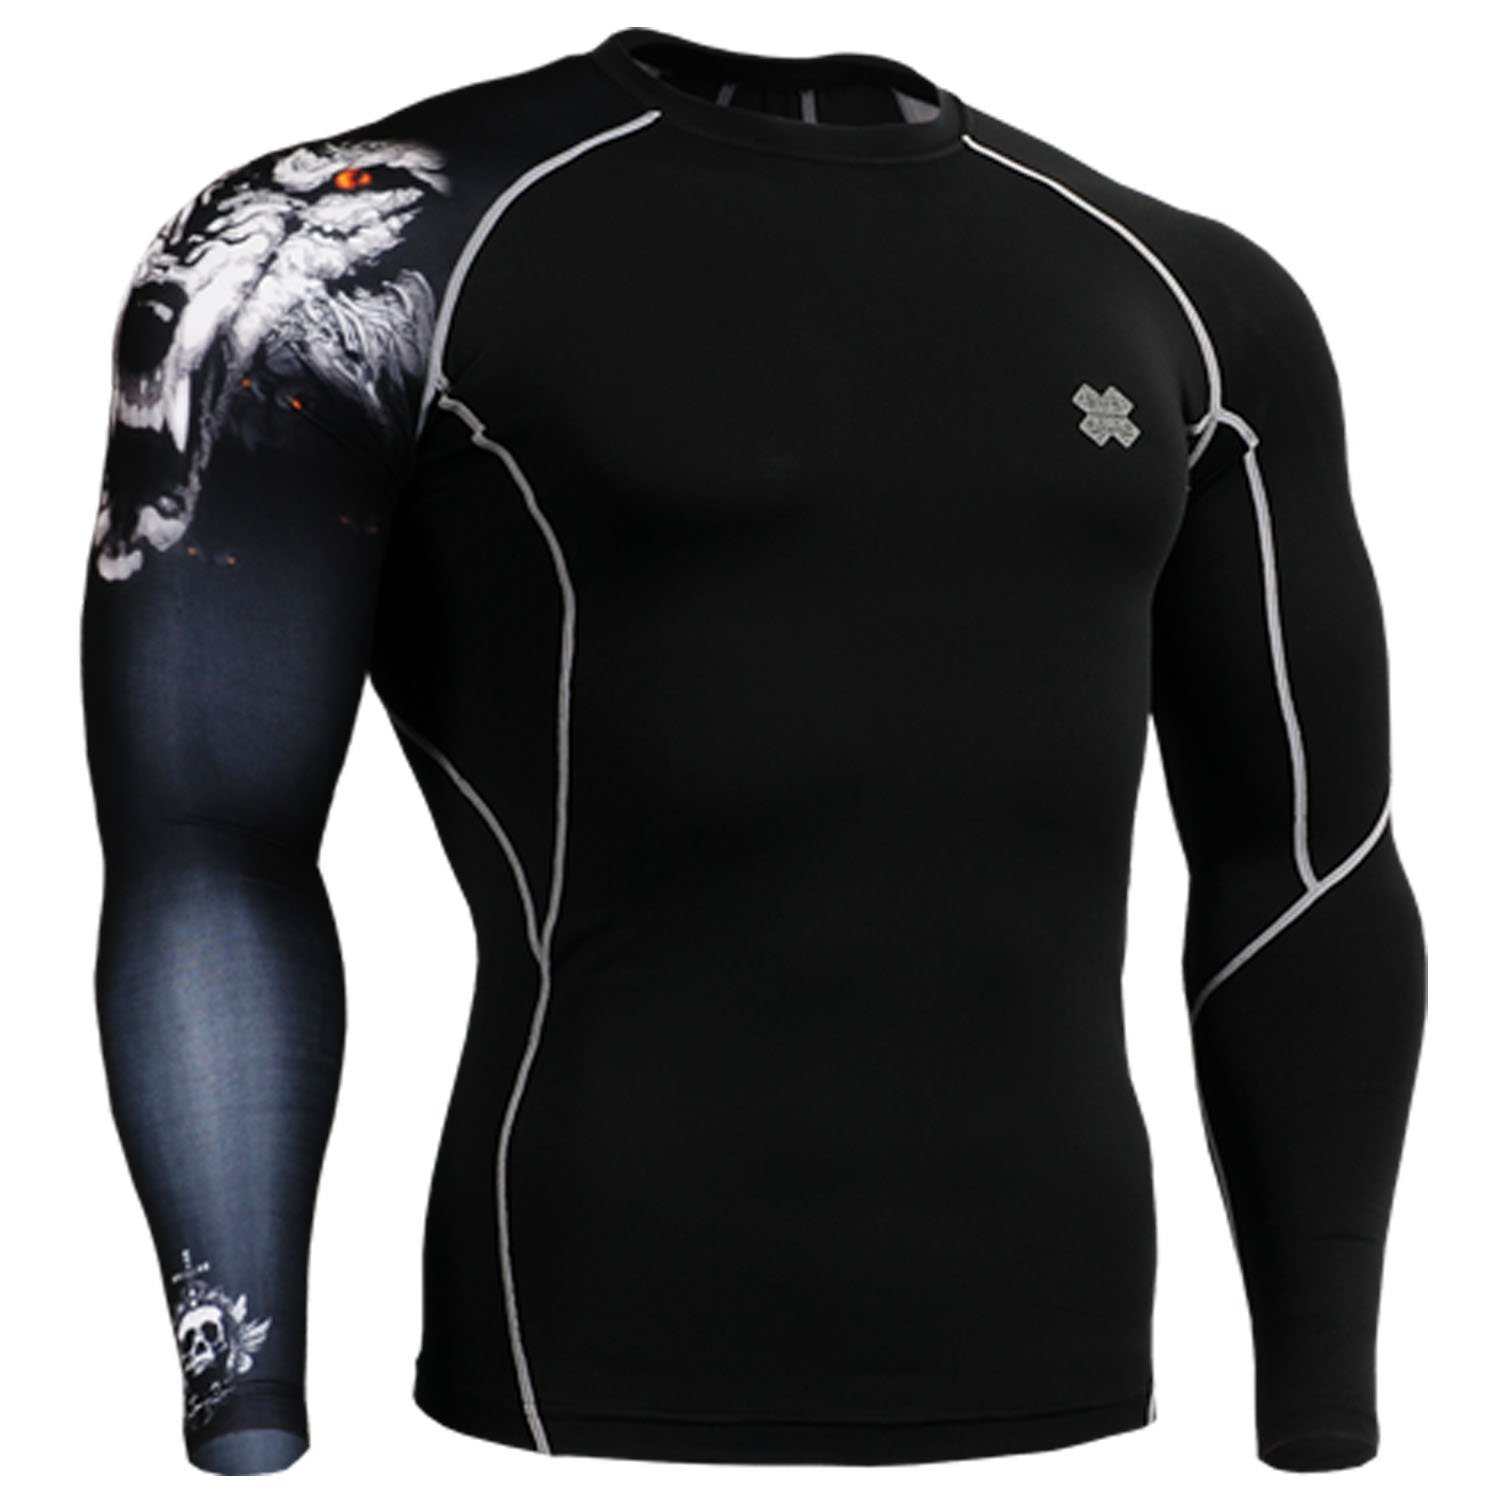 Fixgear Running under compression body armour base layer shirt long sleeve for men